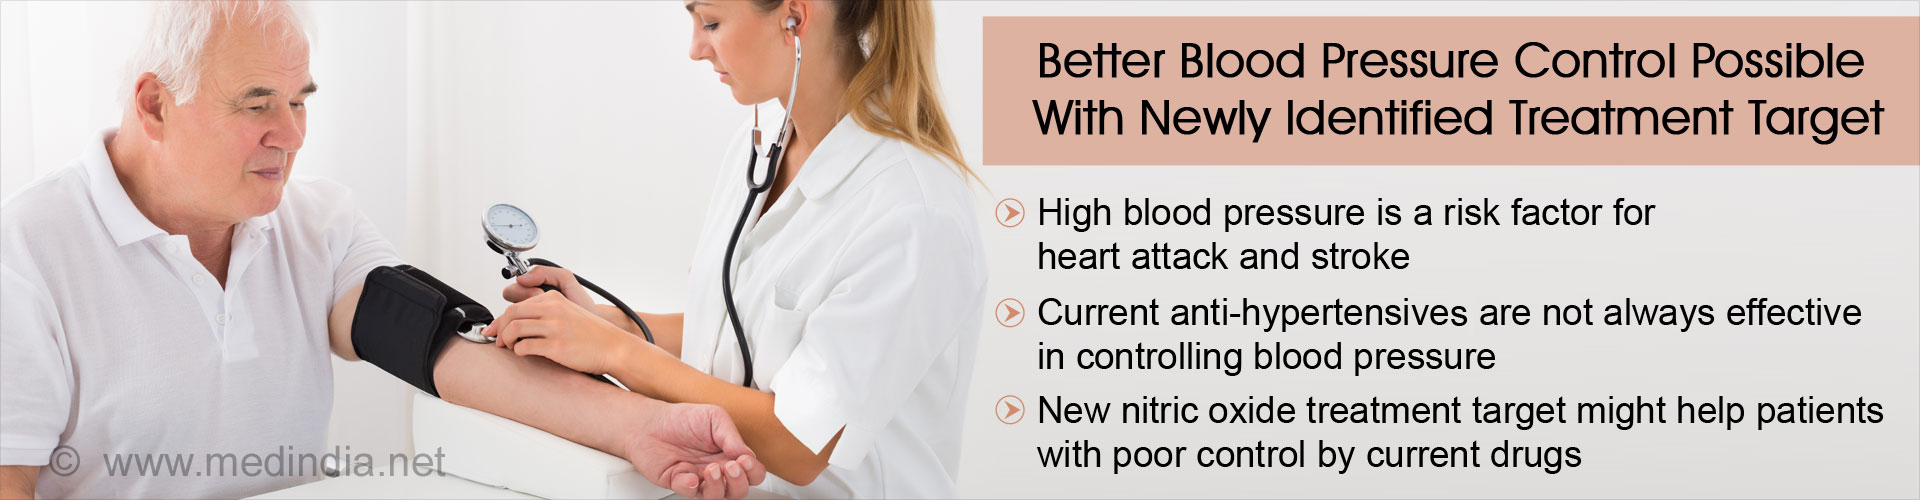 Better blood pressure control possible with newly identified treatment target - High blood pressure is a risk factor for heart attack and stroke - Current anti-hypertensive are not always effective in controlling blood pressure - New nitric oxide treatment target might help patients with poor control by current drugs